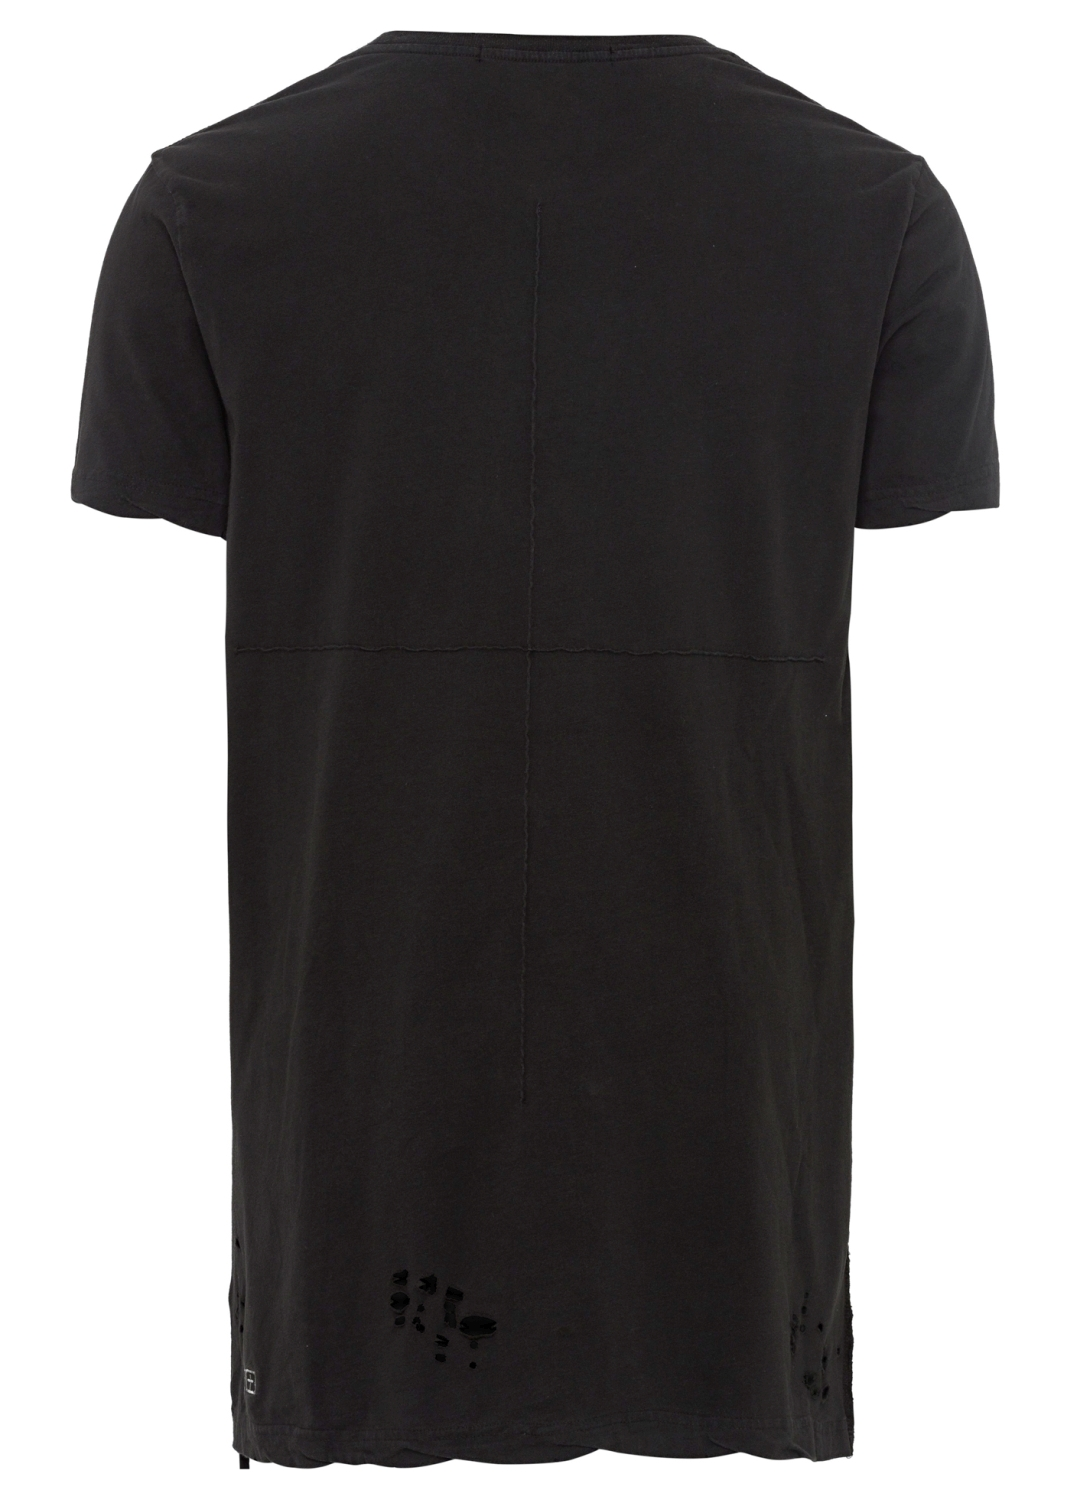 SIOUX SS TEE image number 1